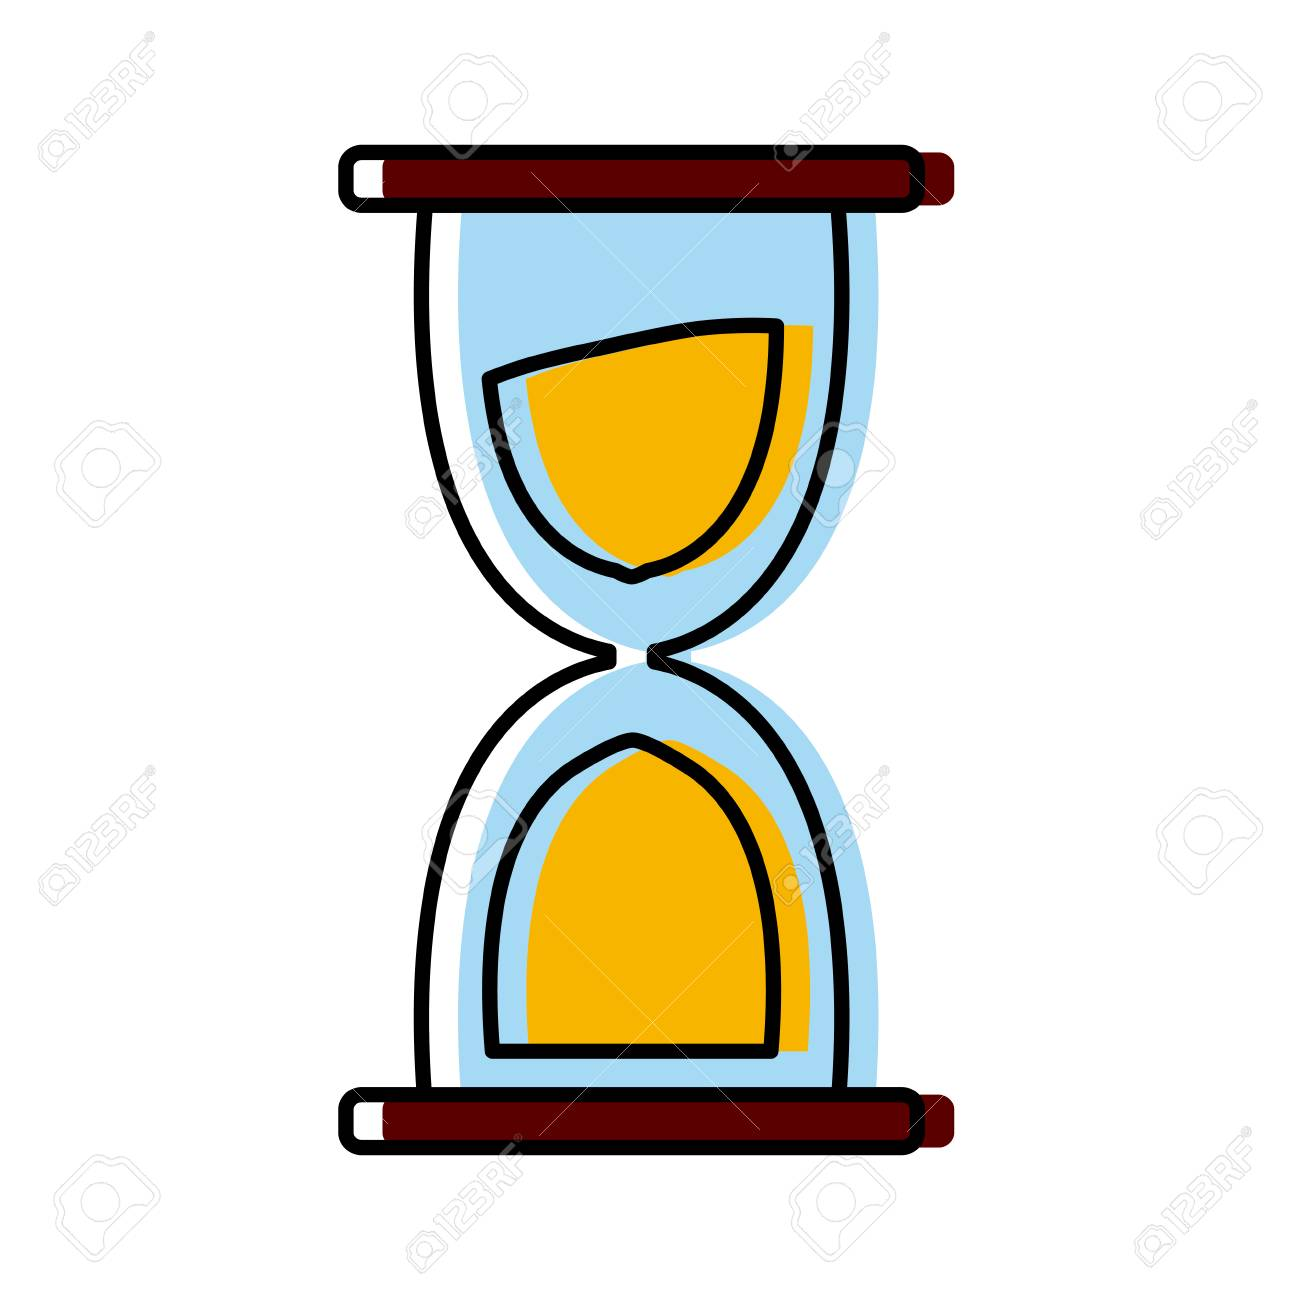 hourglass sand timer icon clip art design illustration royalty free rh 123rf com hourglass figure clipart hourglass clip art free